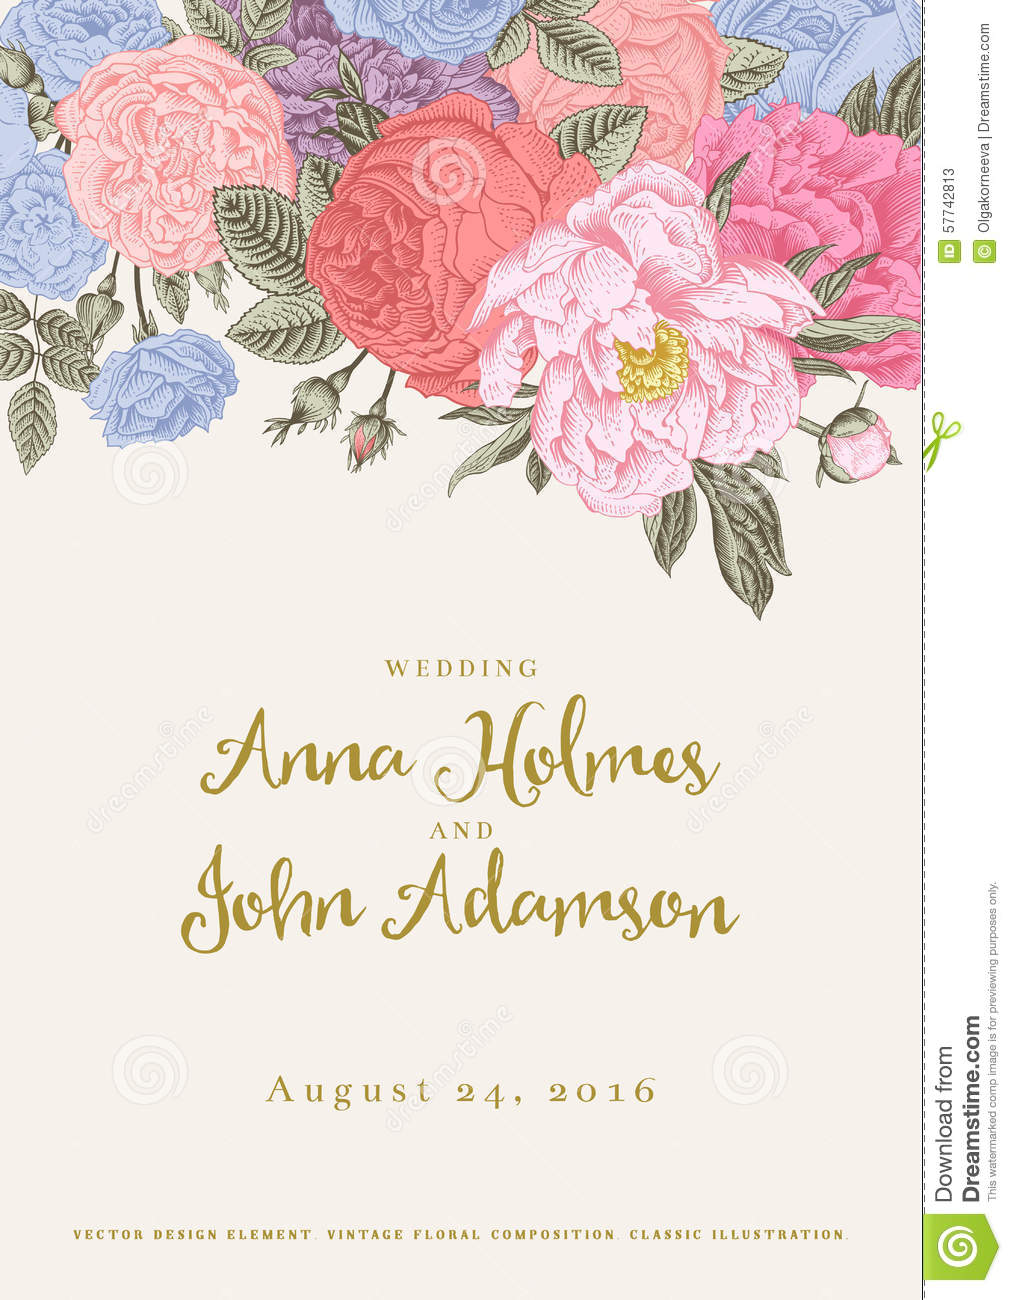 Invitation Wedding Templates was great invitation design